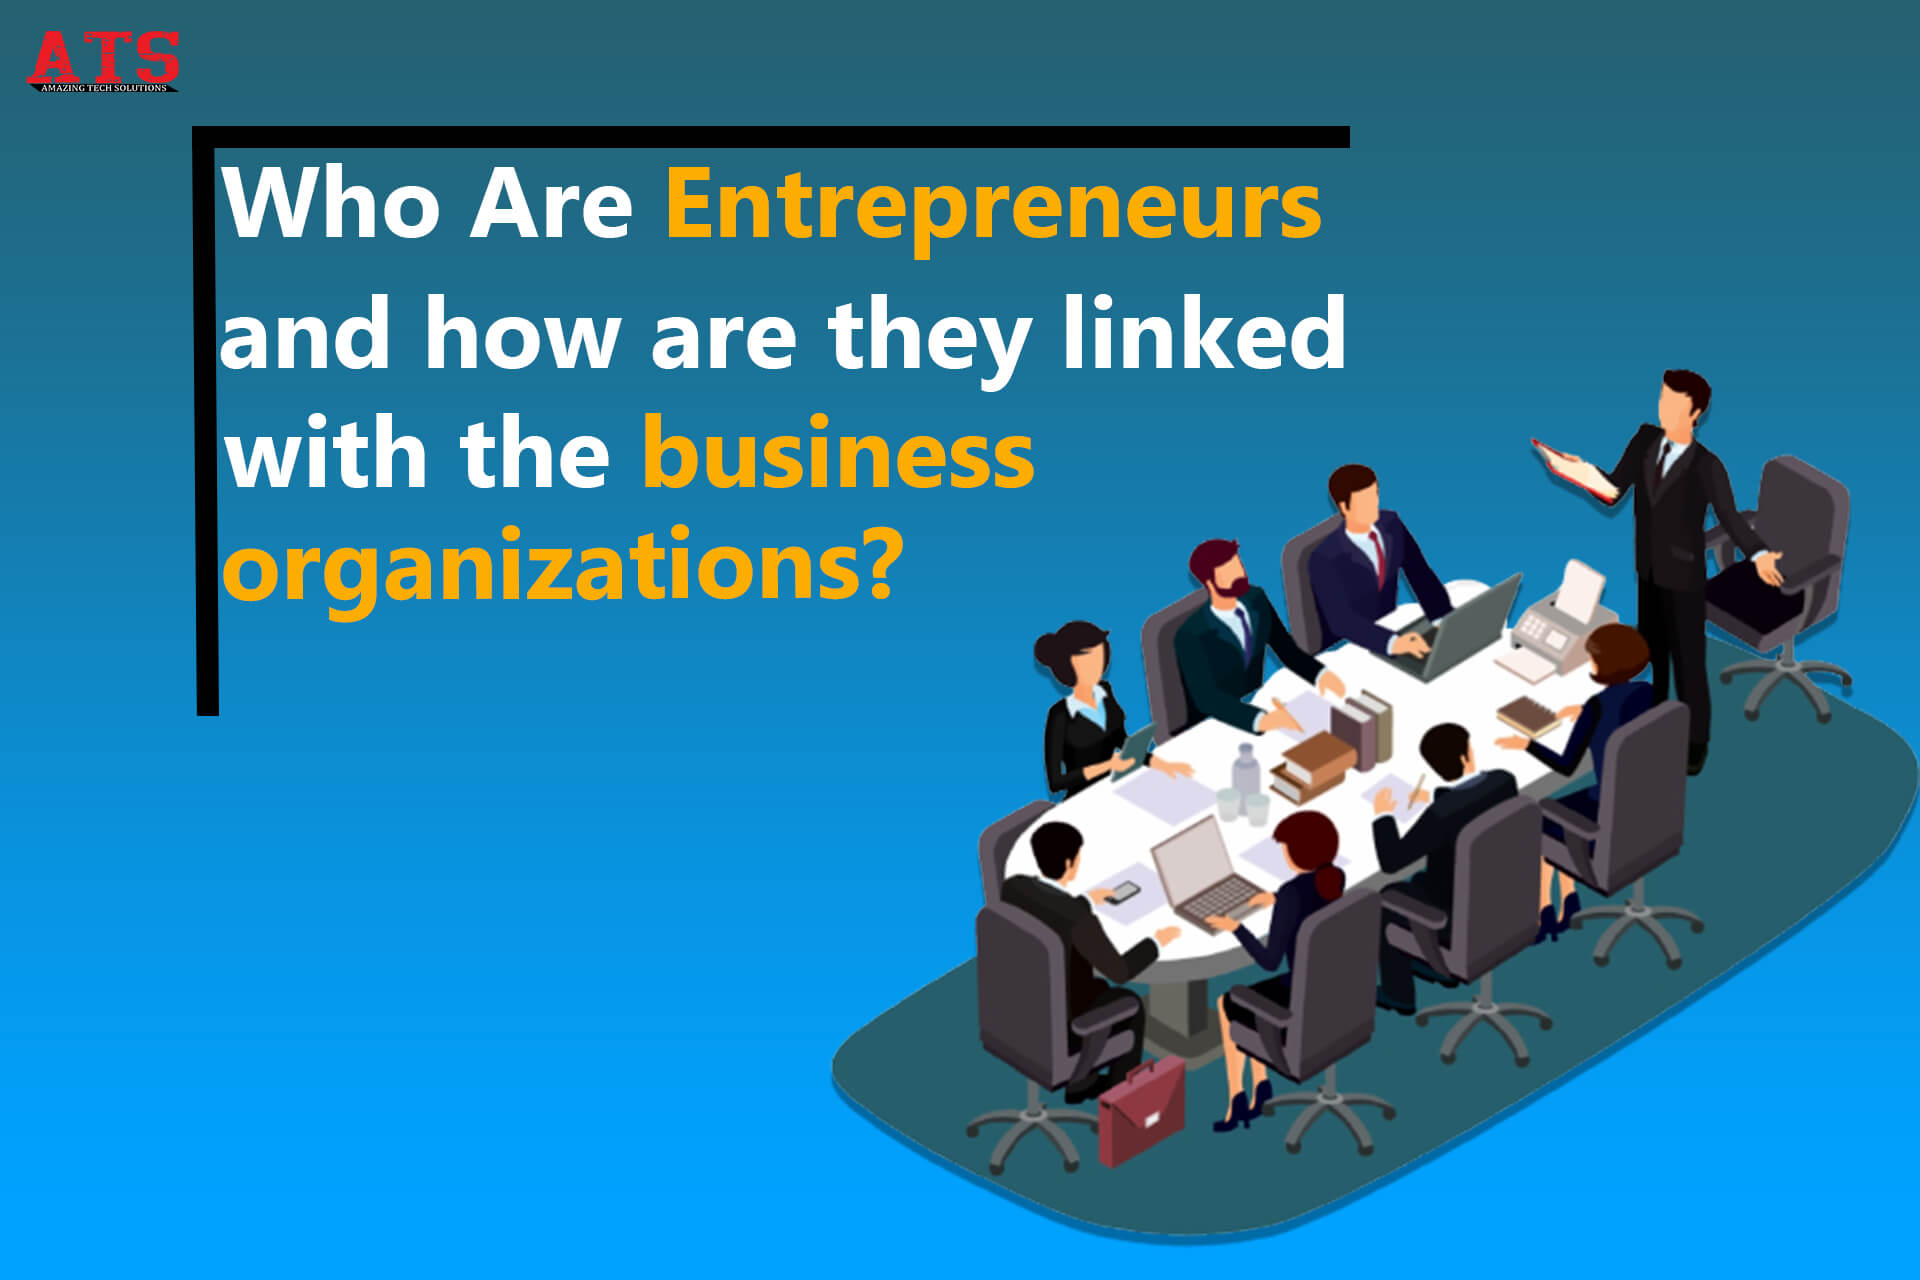 How entrepreneurs are linked with business organizations